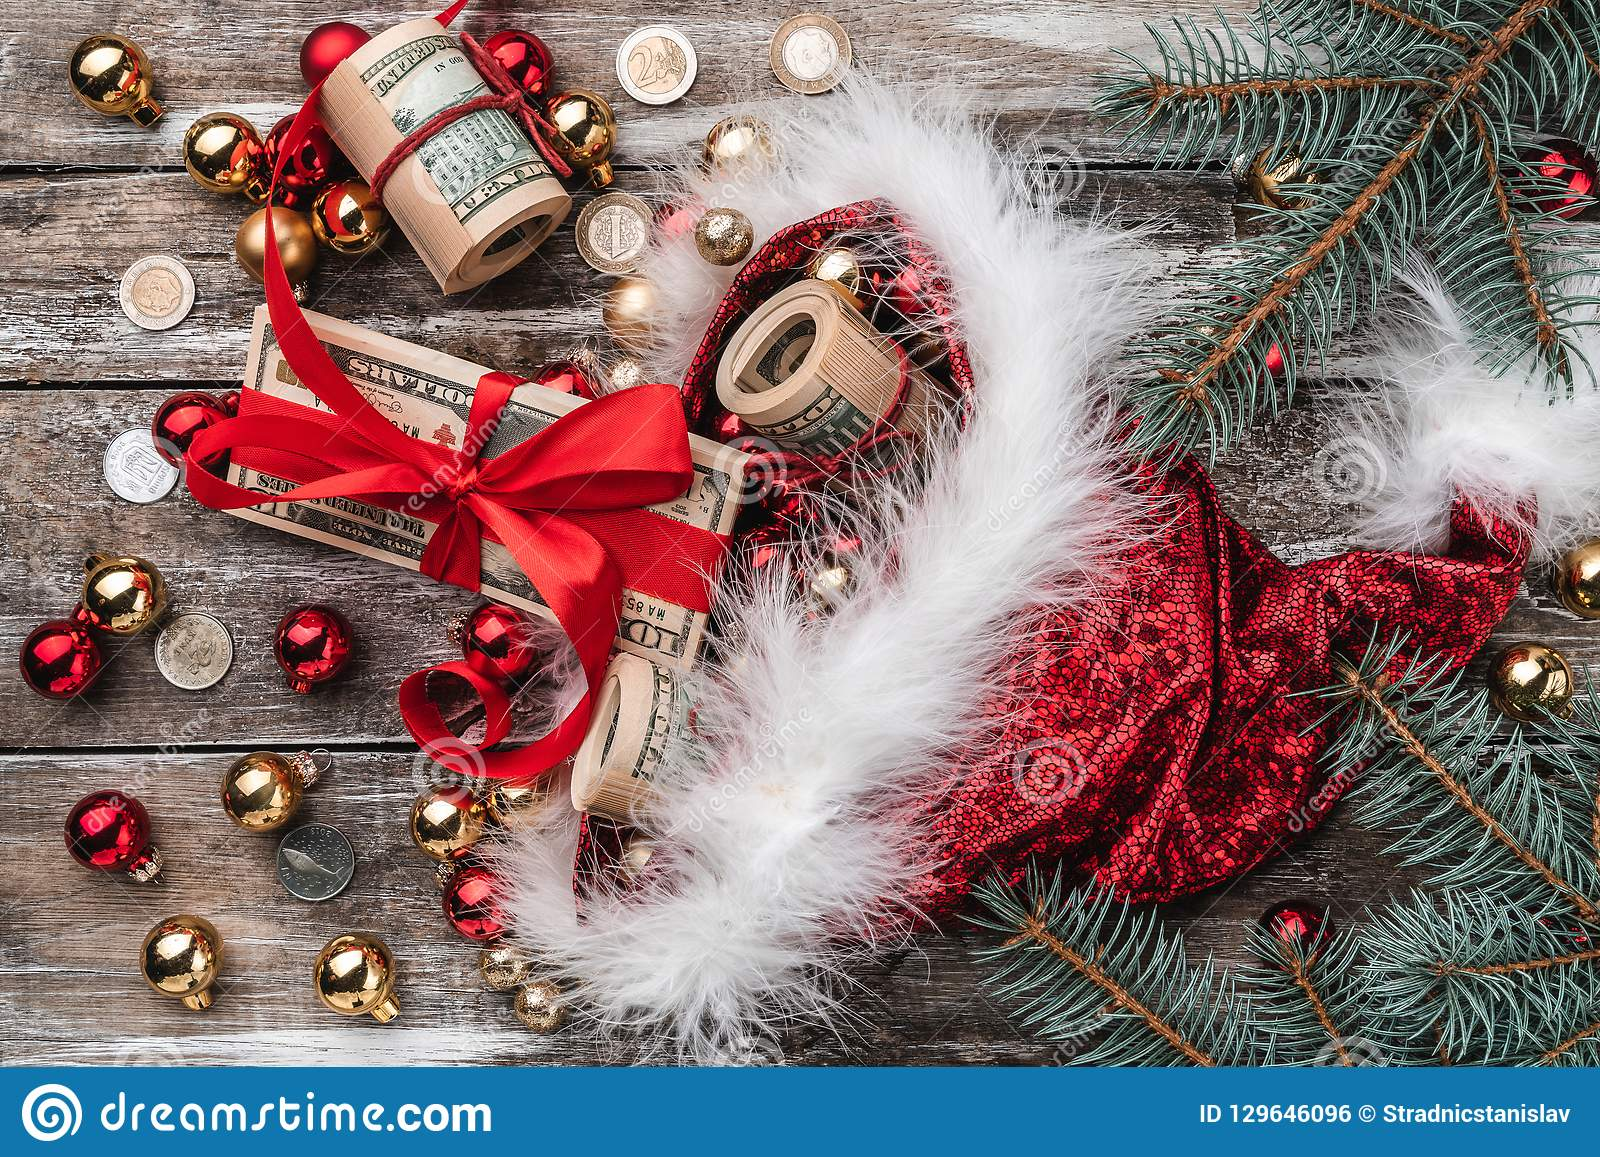 Old wooden Christmas background, Santa Claus, baubles and money coins and Xmas items. Top view